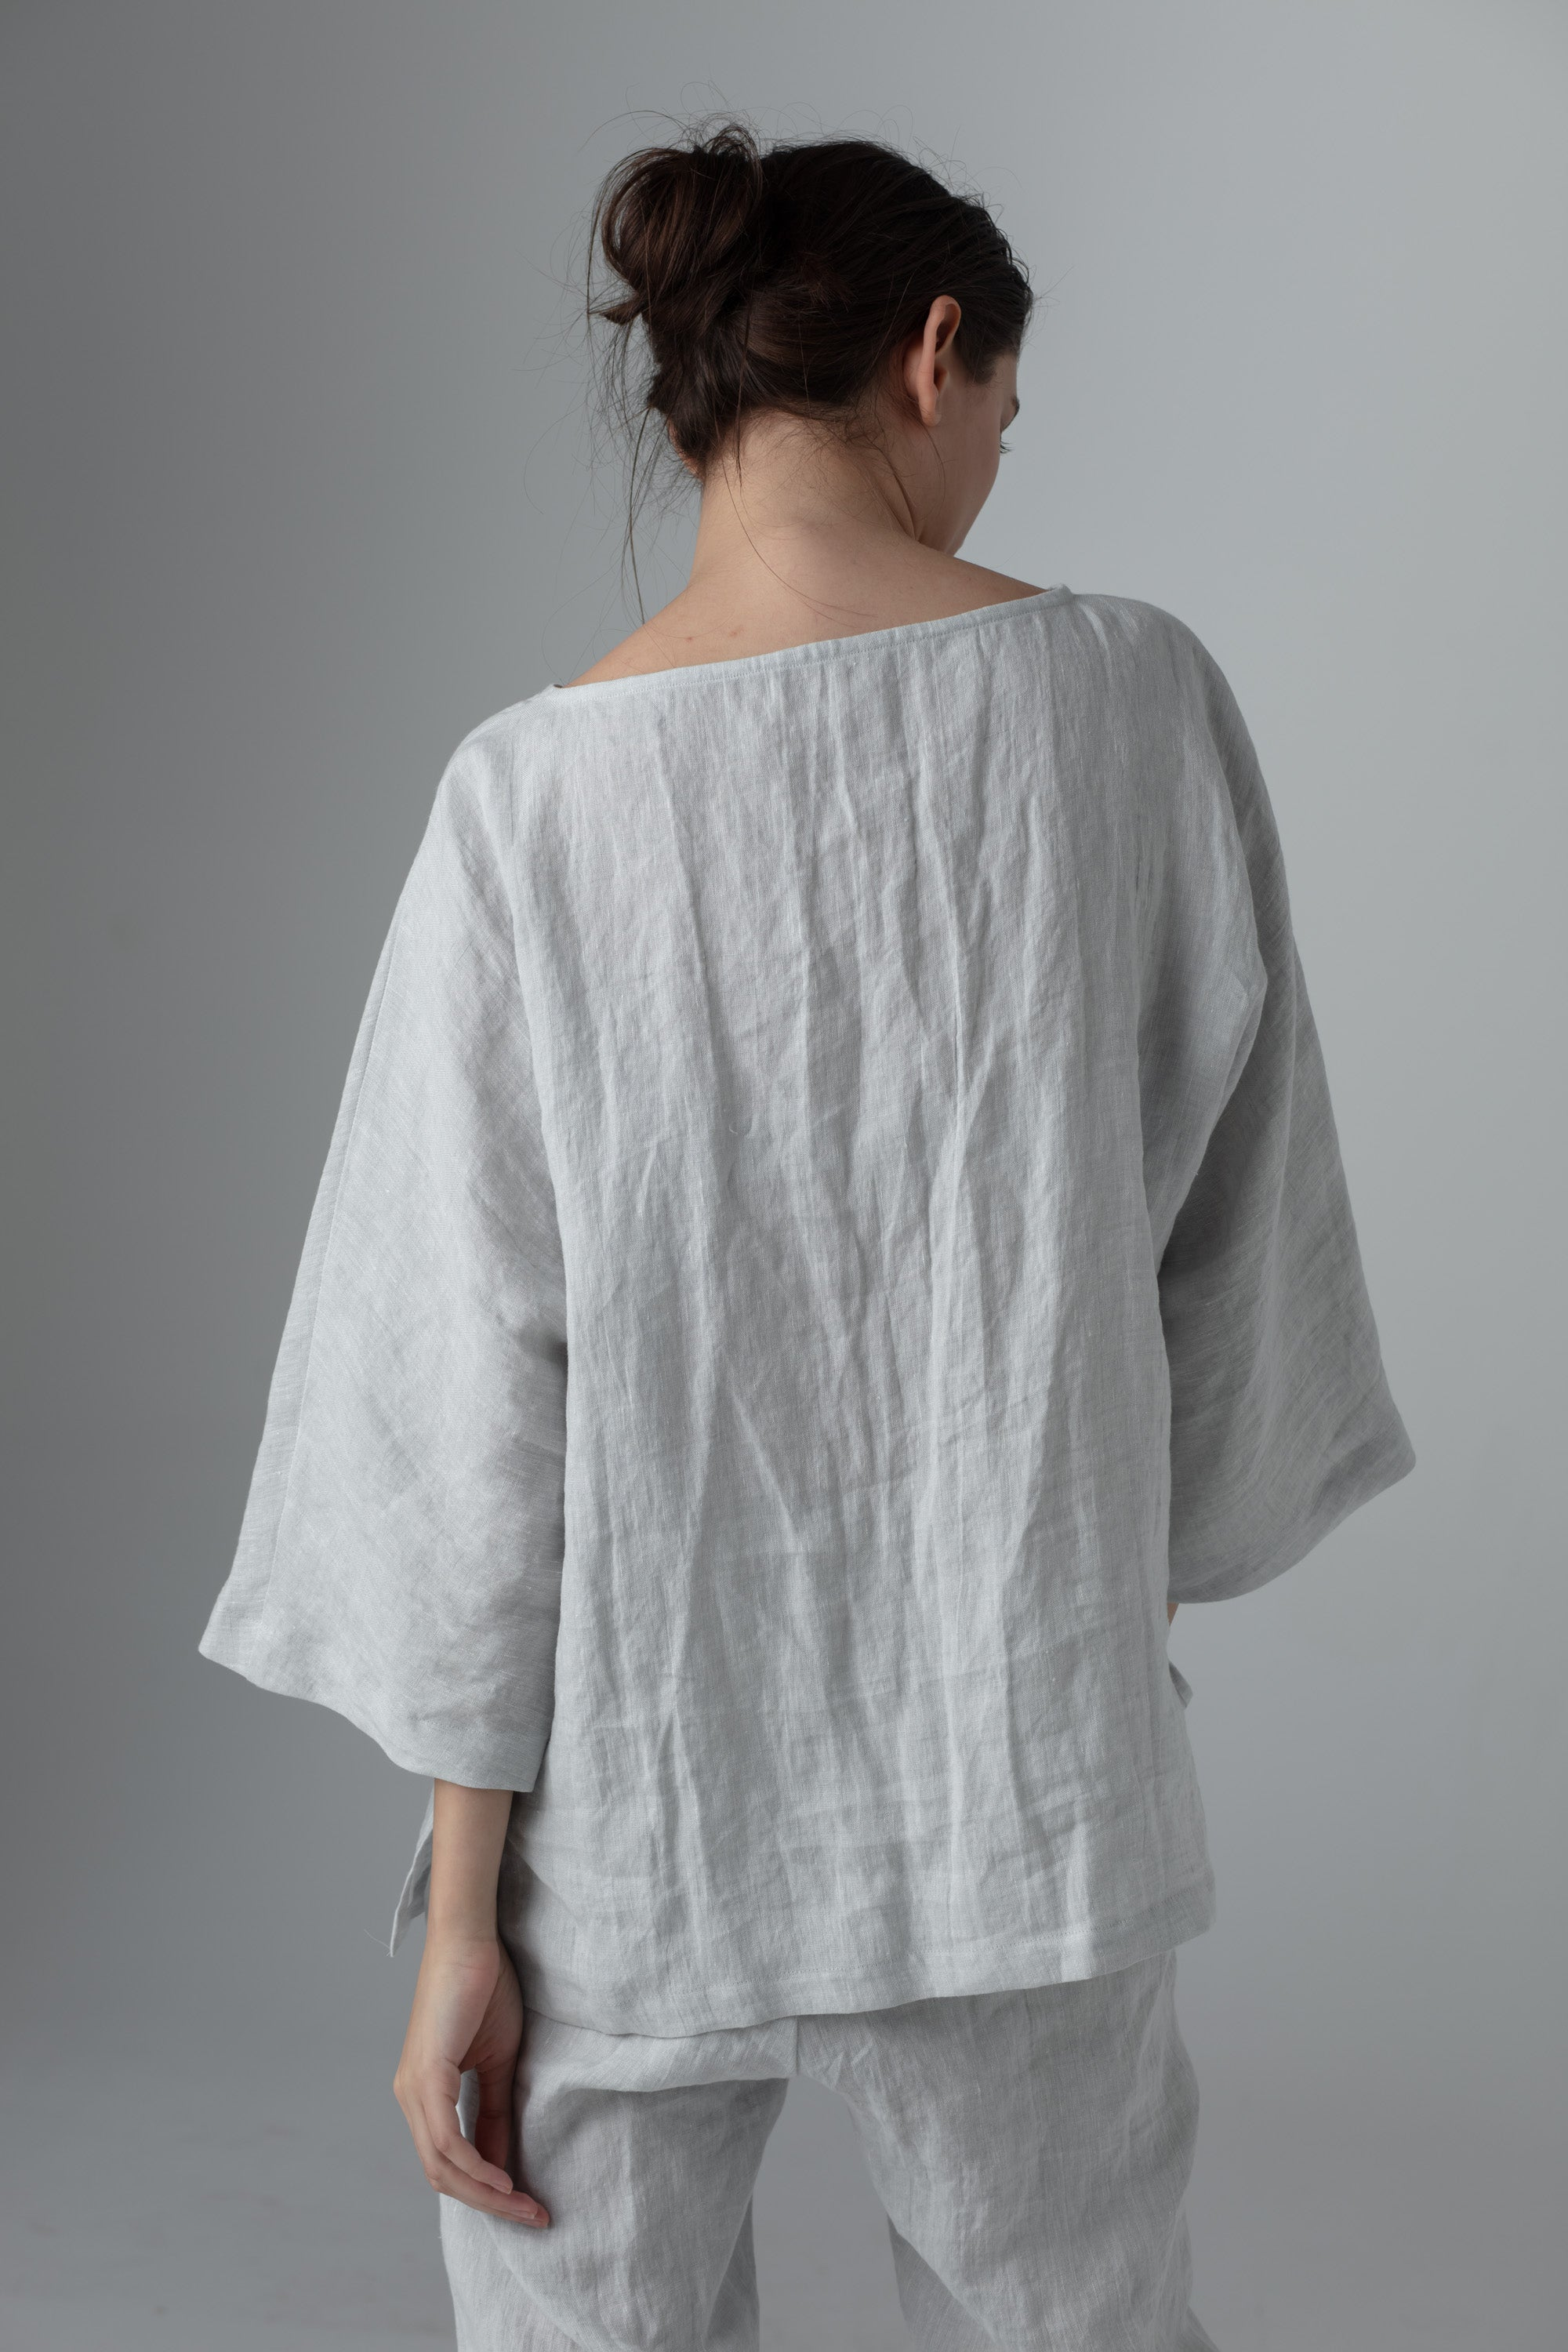 Minimalistic linen clothes for women